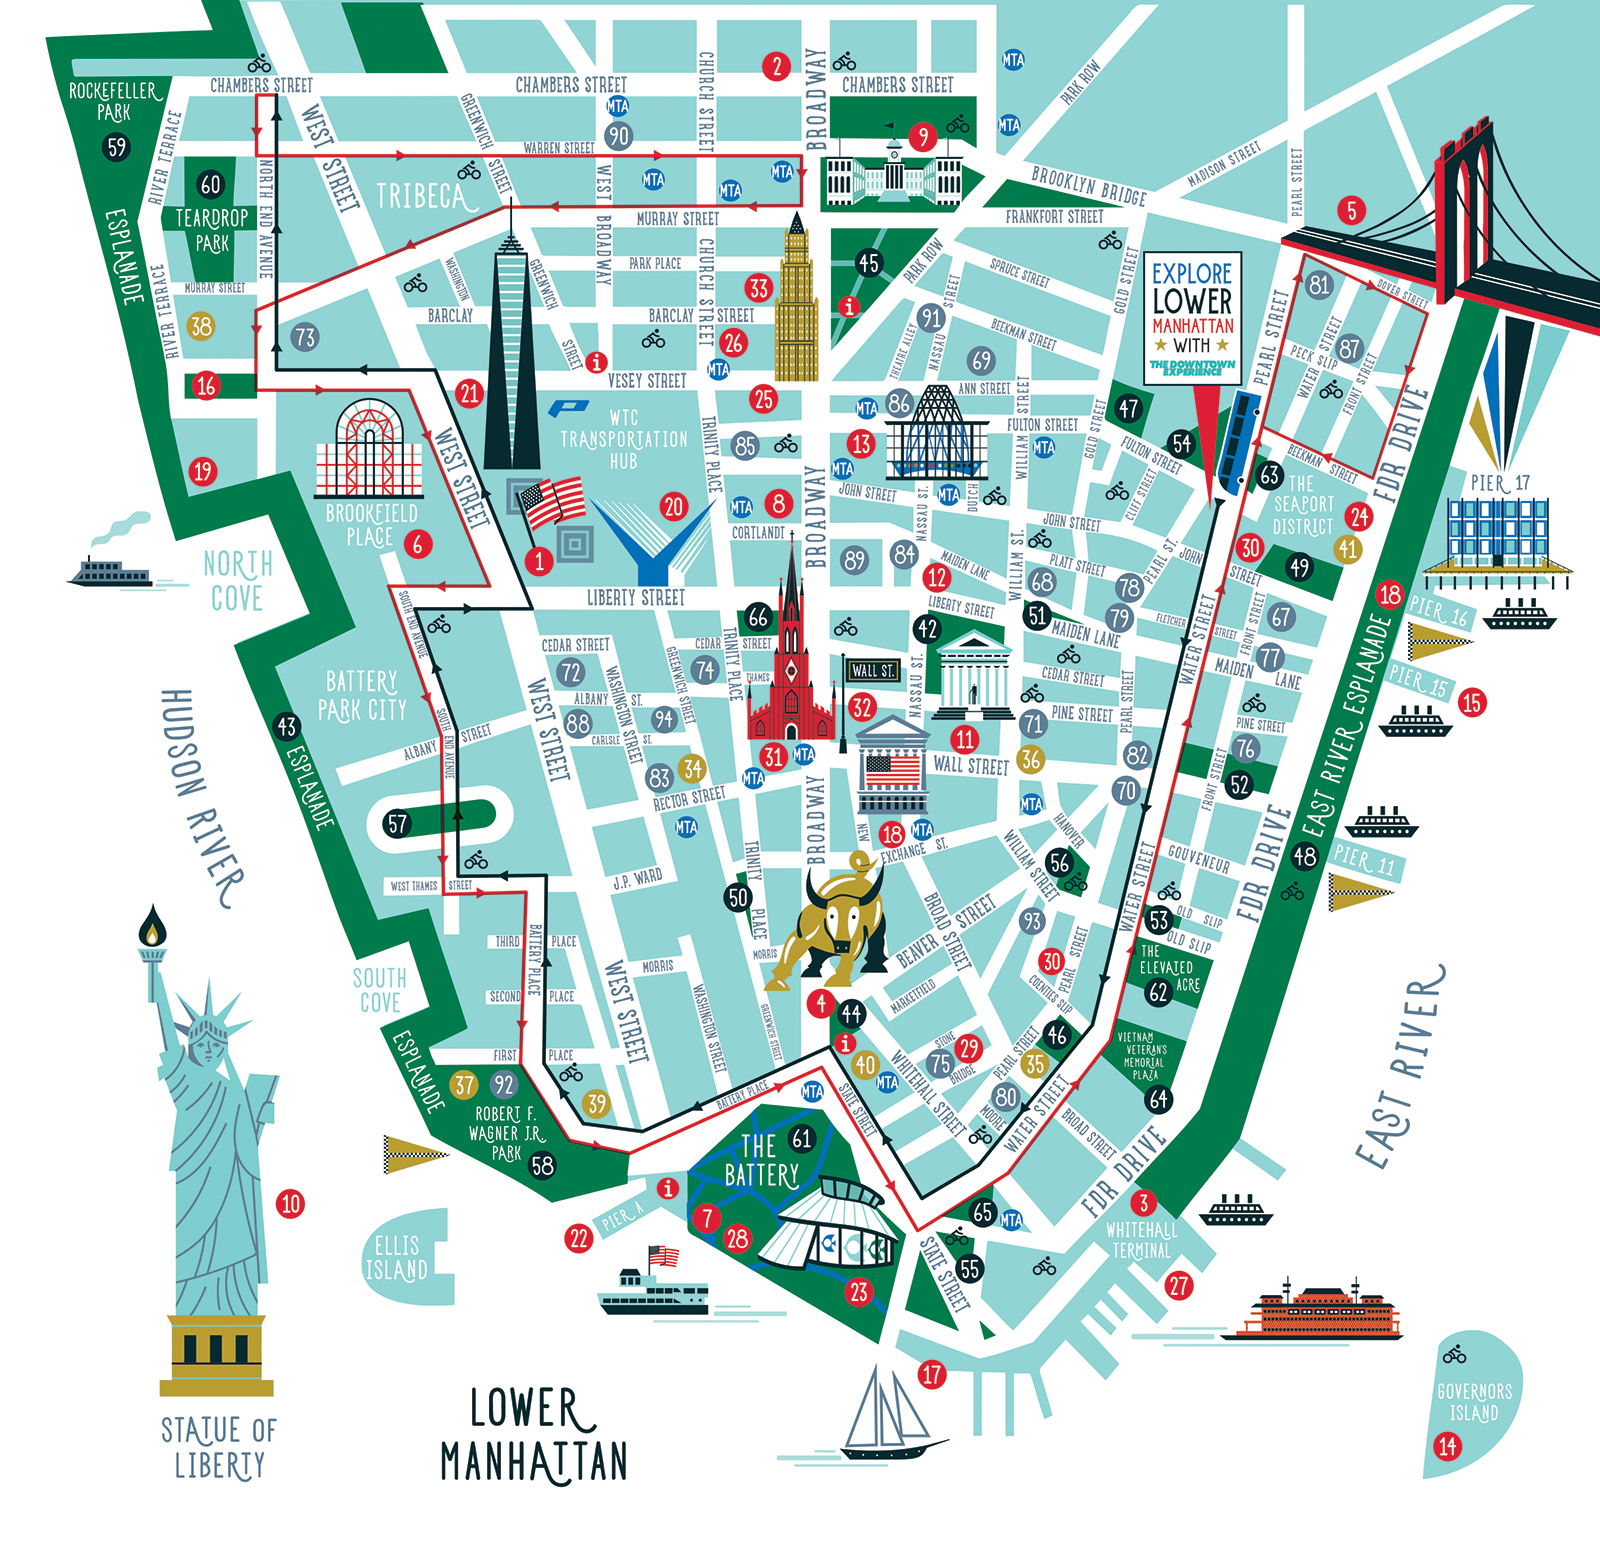 LOWER MANHATTAN MAP — Michael Mullan on throgs neck bridge map, brooklyn map, west village map, long island map, fire island map, queens map, harlem map, ny map, central park map, lincoln center map, roosevelt island map, randall's island map, nassau county map, path map, north brother island map, murray hill map, new york map, madison square garden map, times square map, jersey city map,